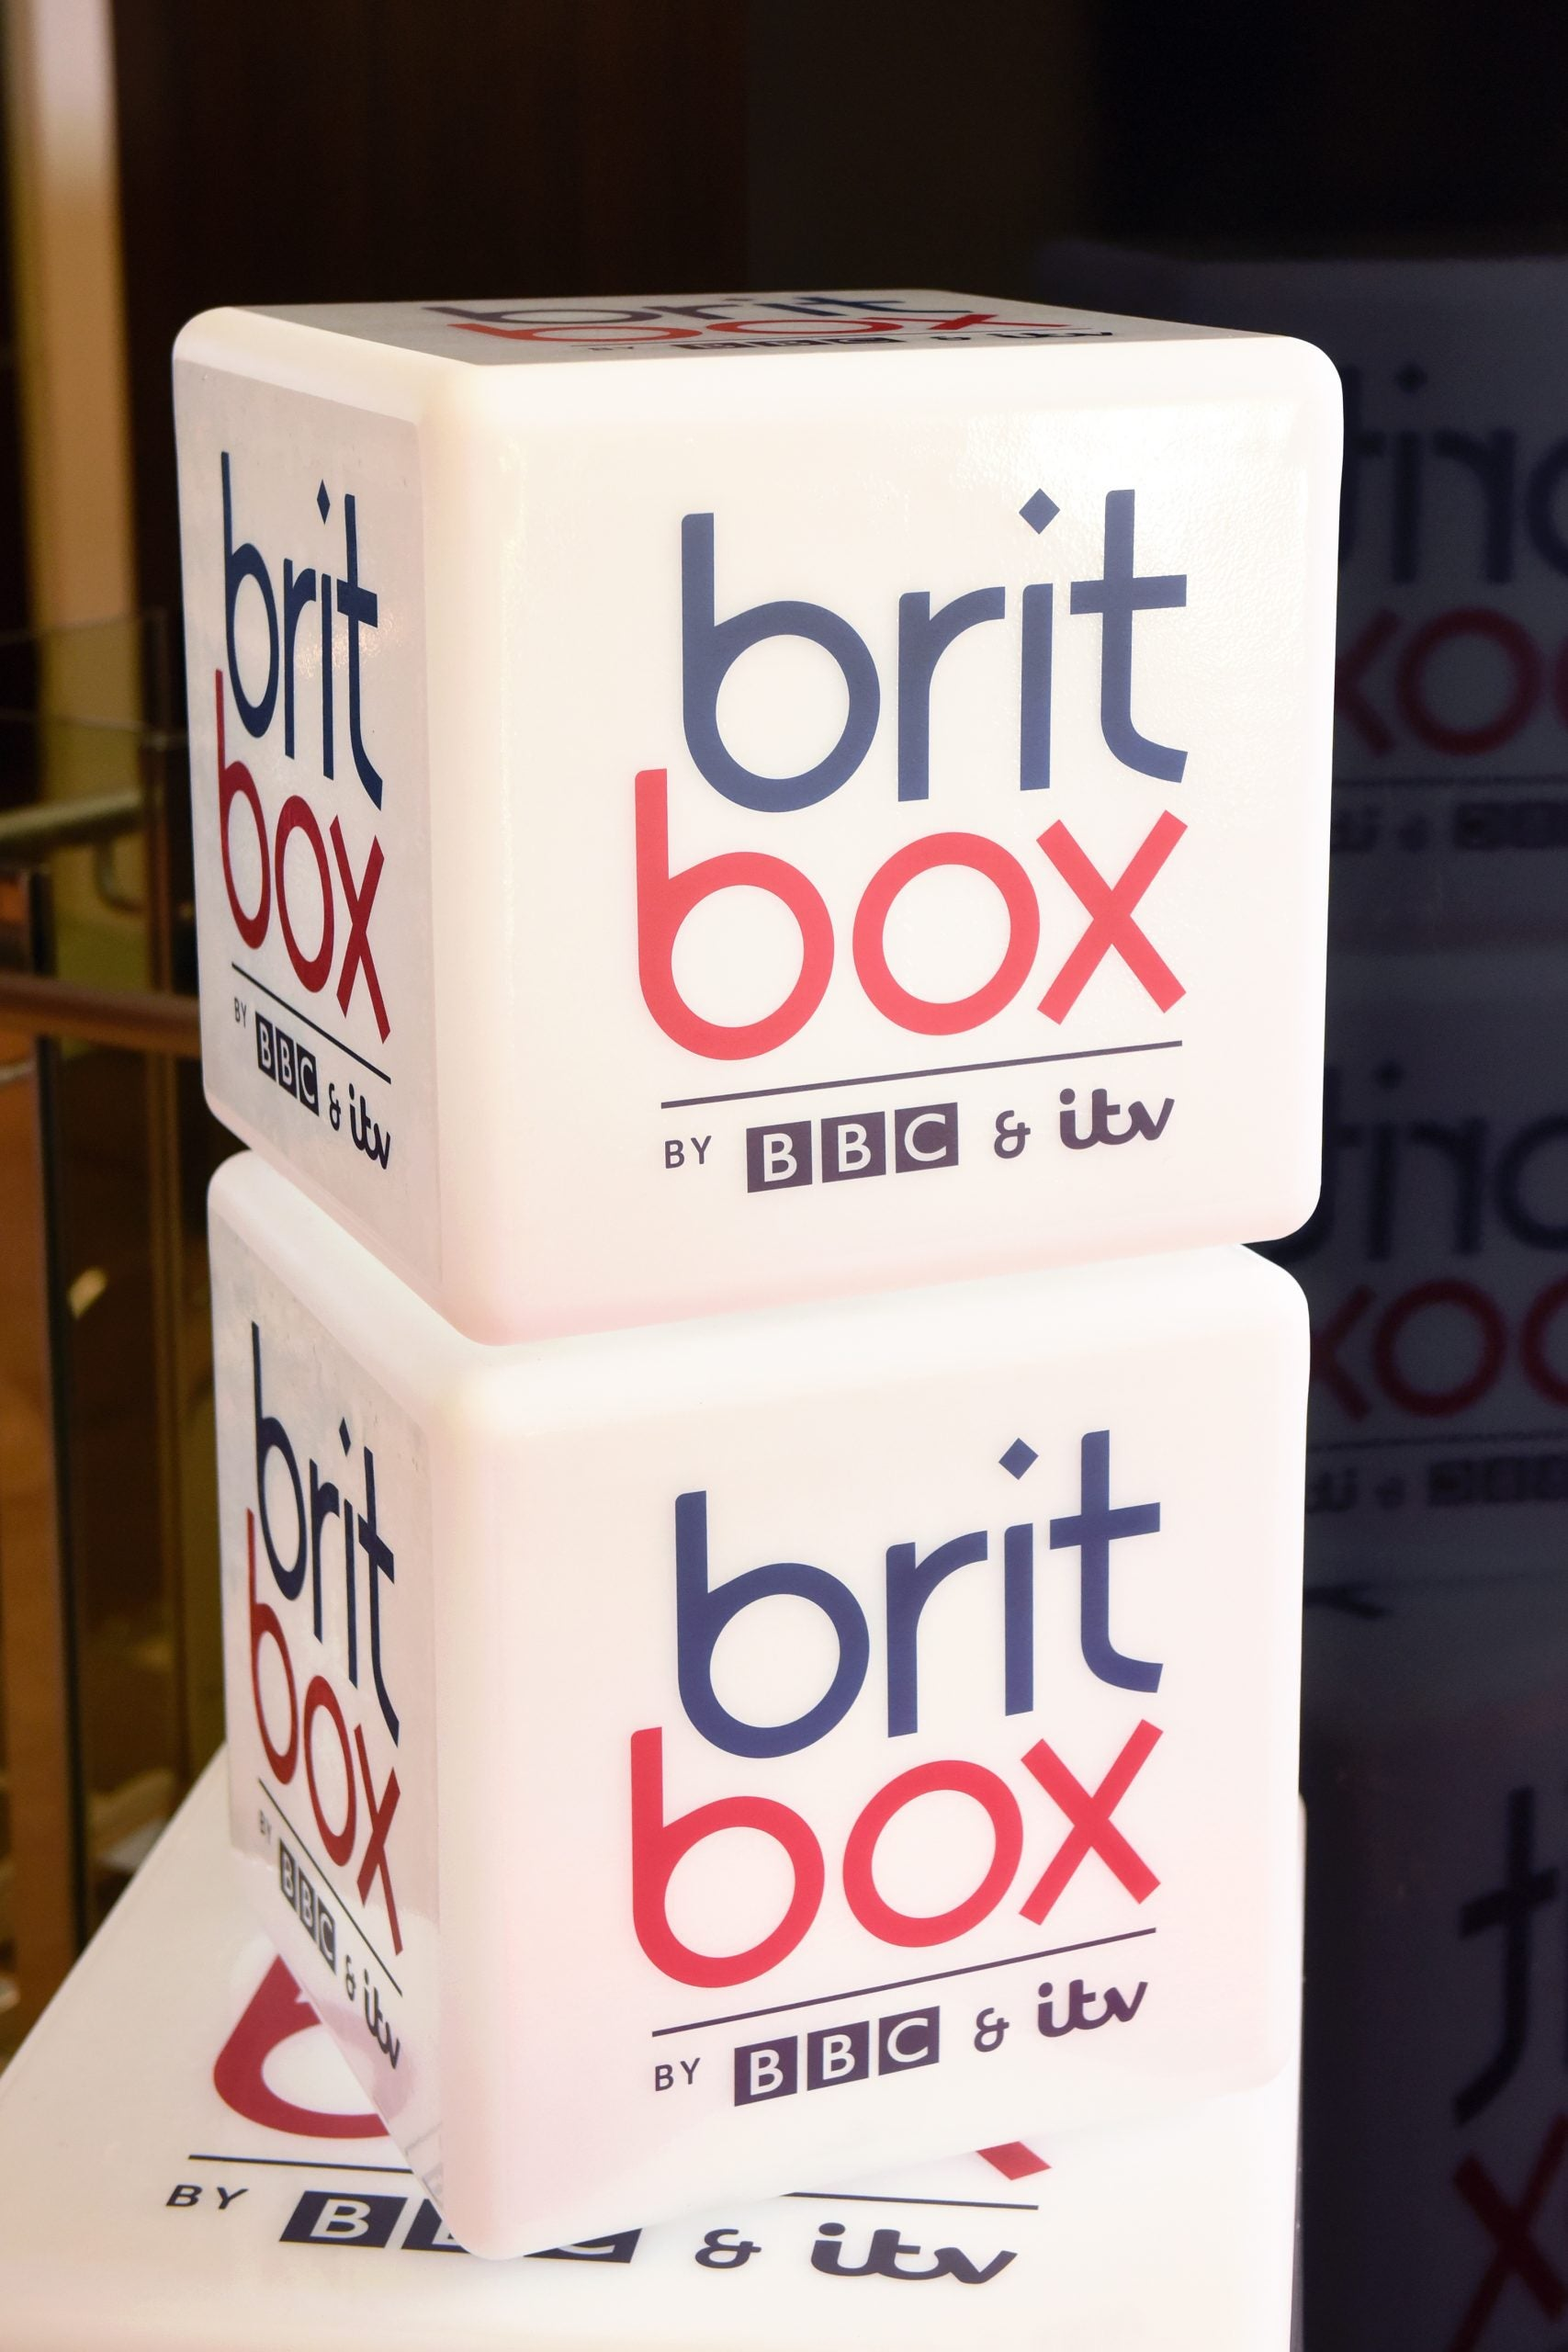 BritBox is better late than never, but it's still a sign that broadcaster power is waning